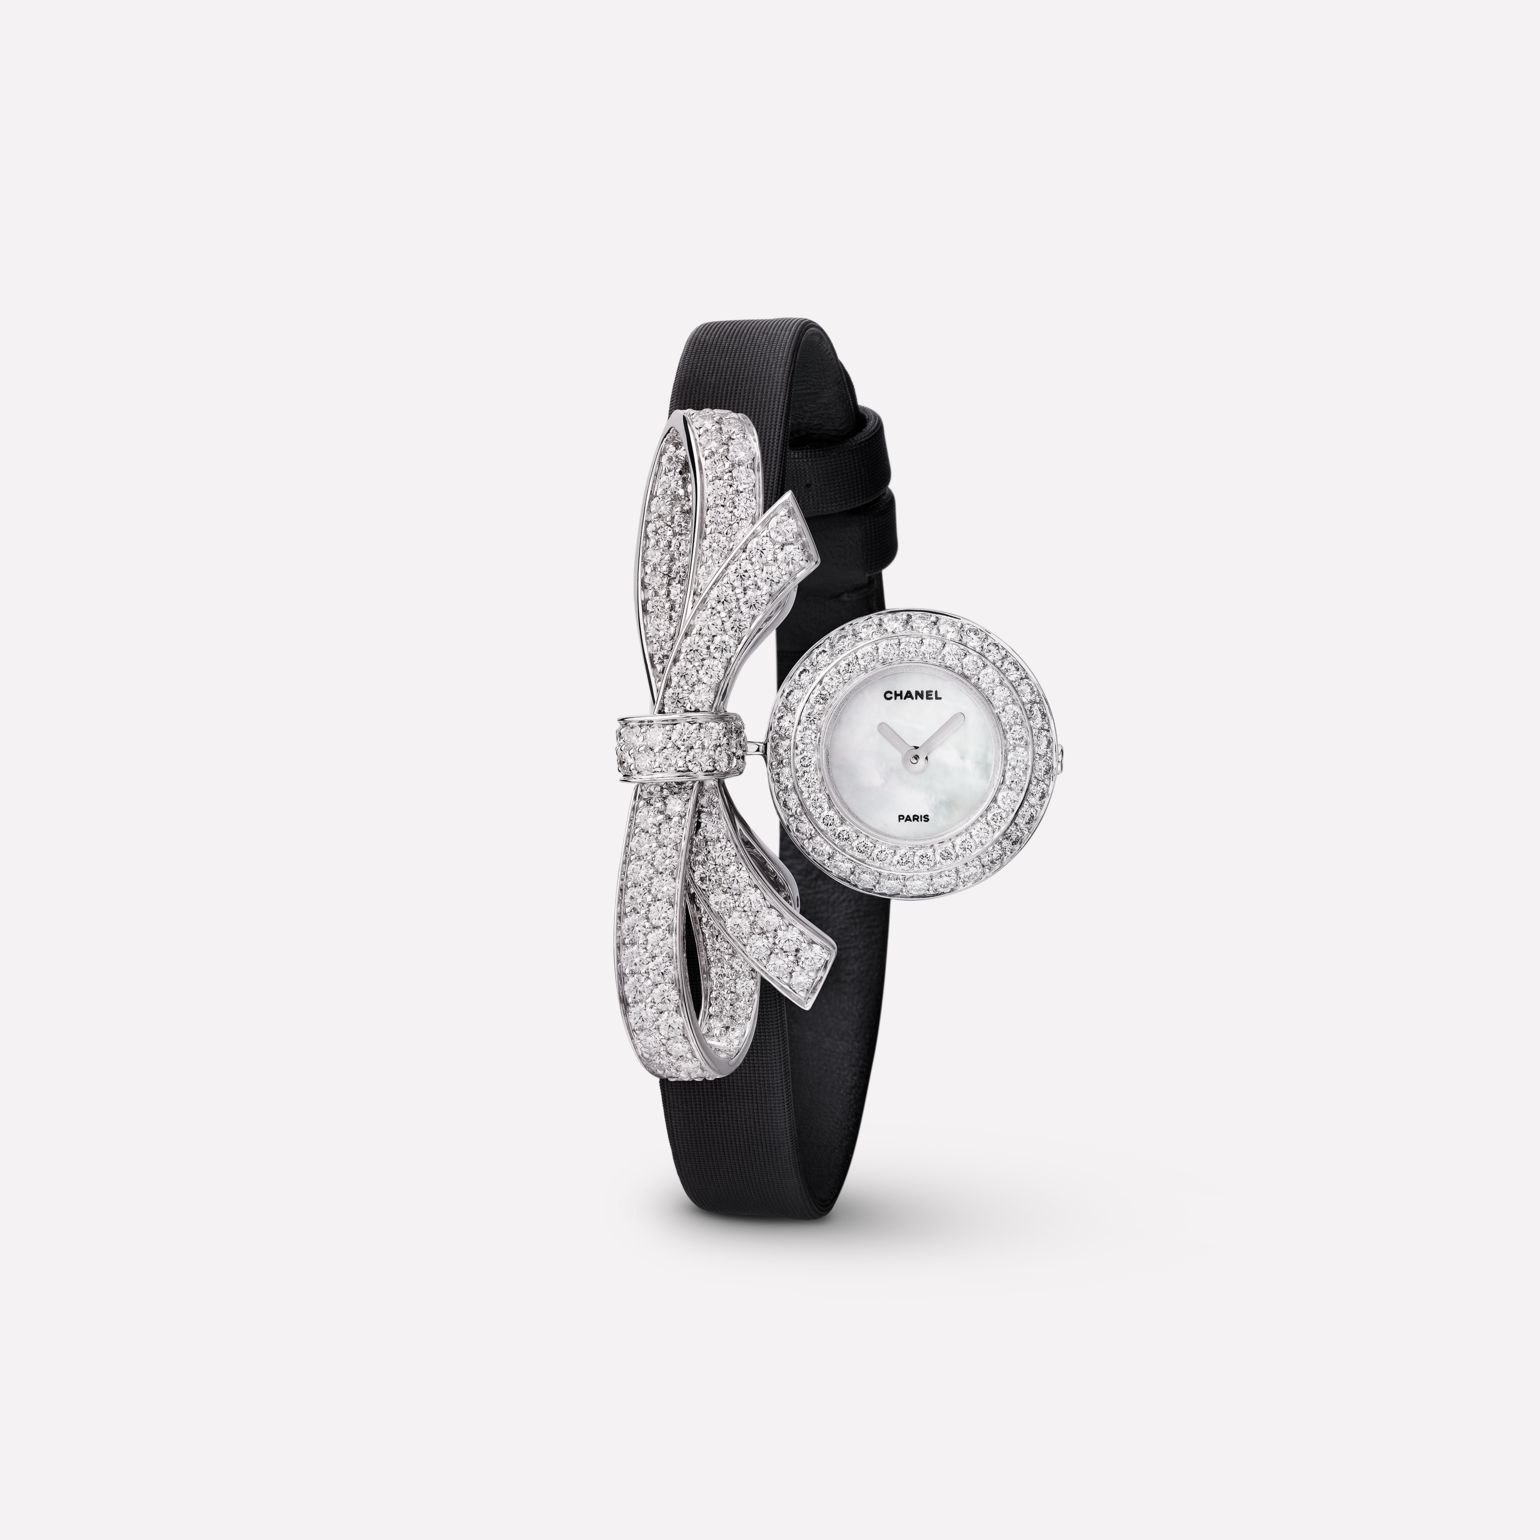 Montre Joaillerie Ruban Motif ruban en or blanc 18 carats et diamants